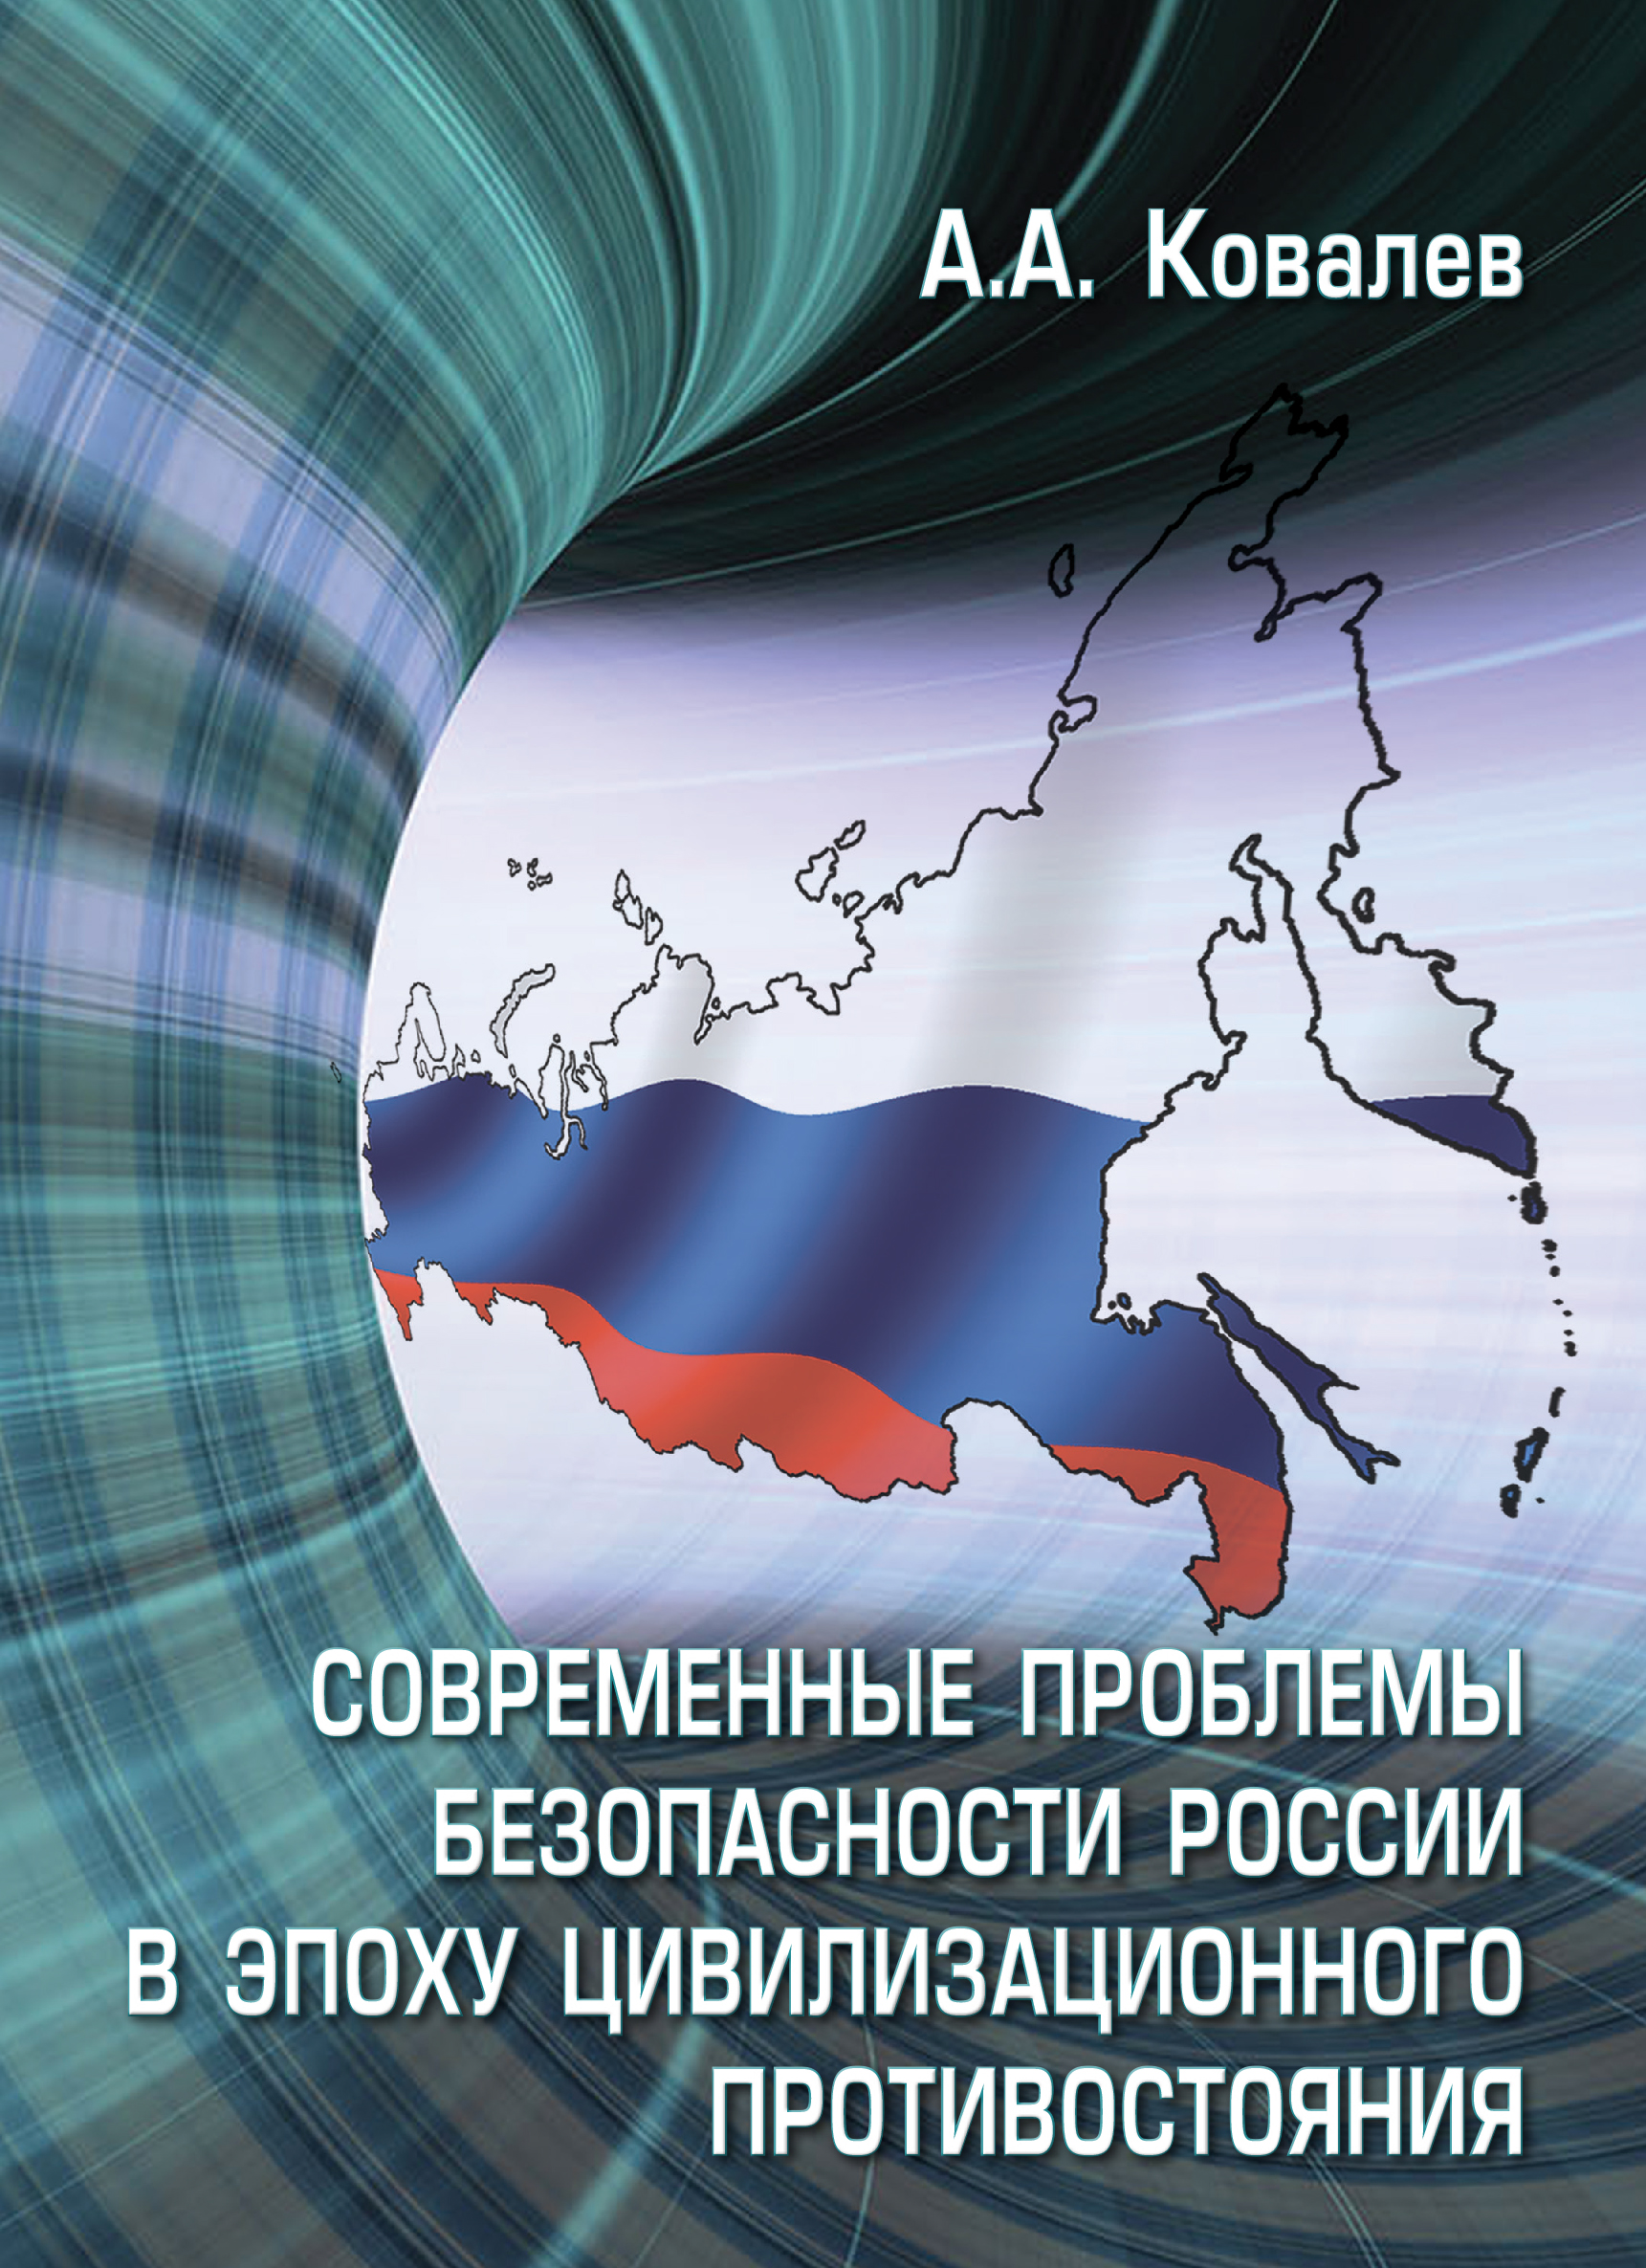 MODERN PROBLEMS OF RUSSIA'S SECURITY IN THE ERA OF CIVILIZATIONAL CONFRONTATION